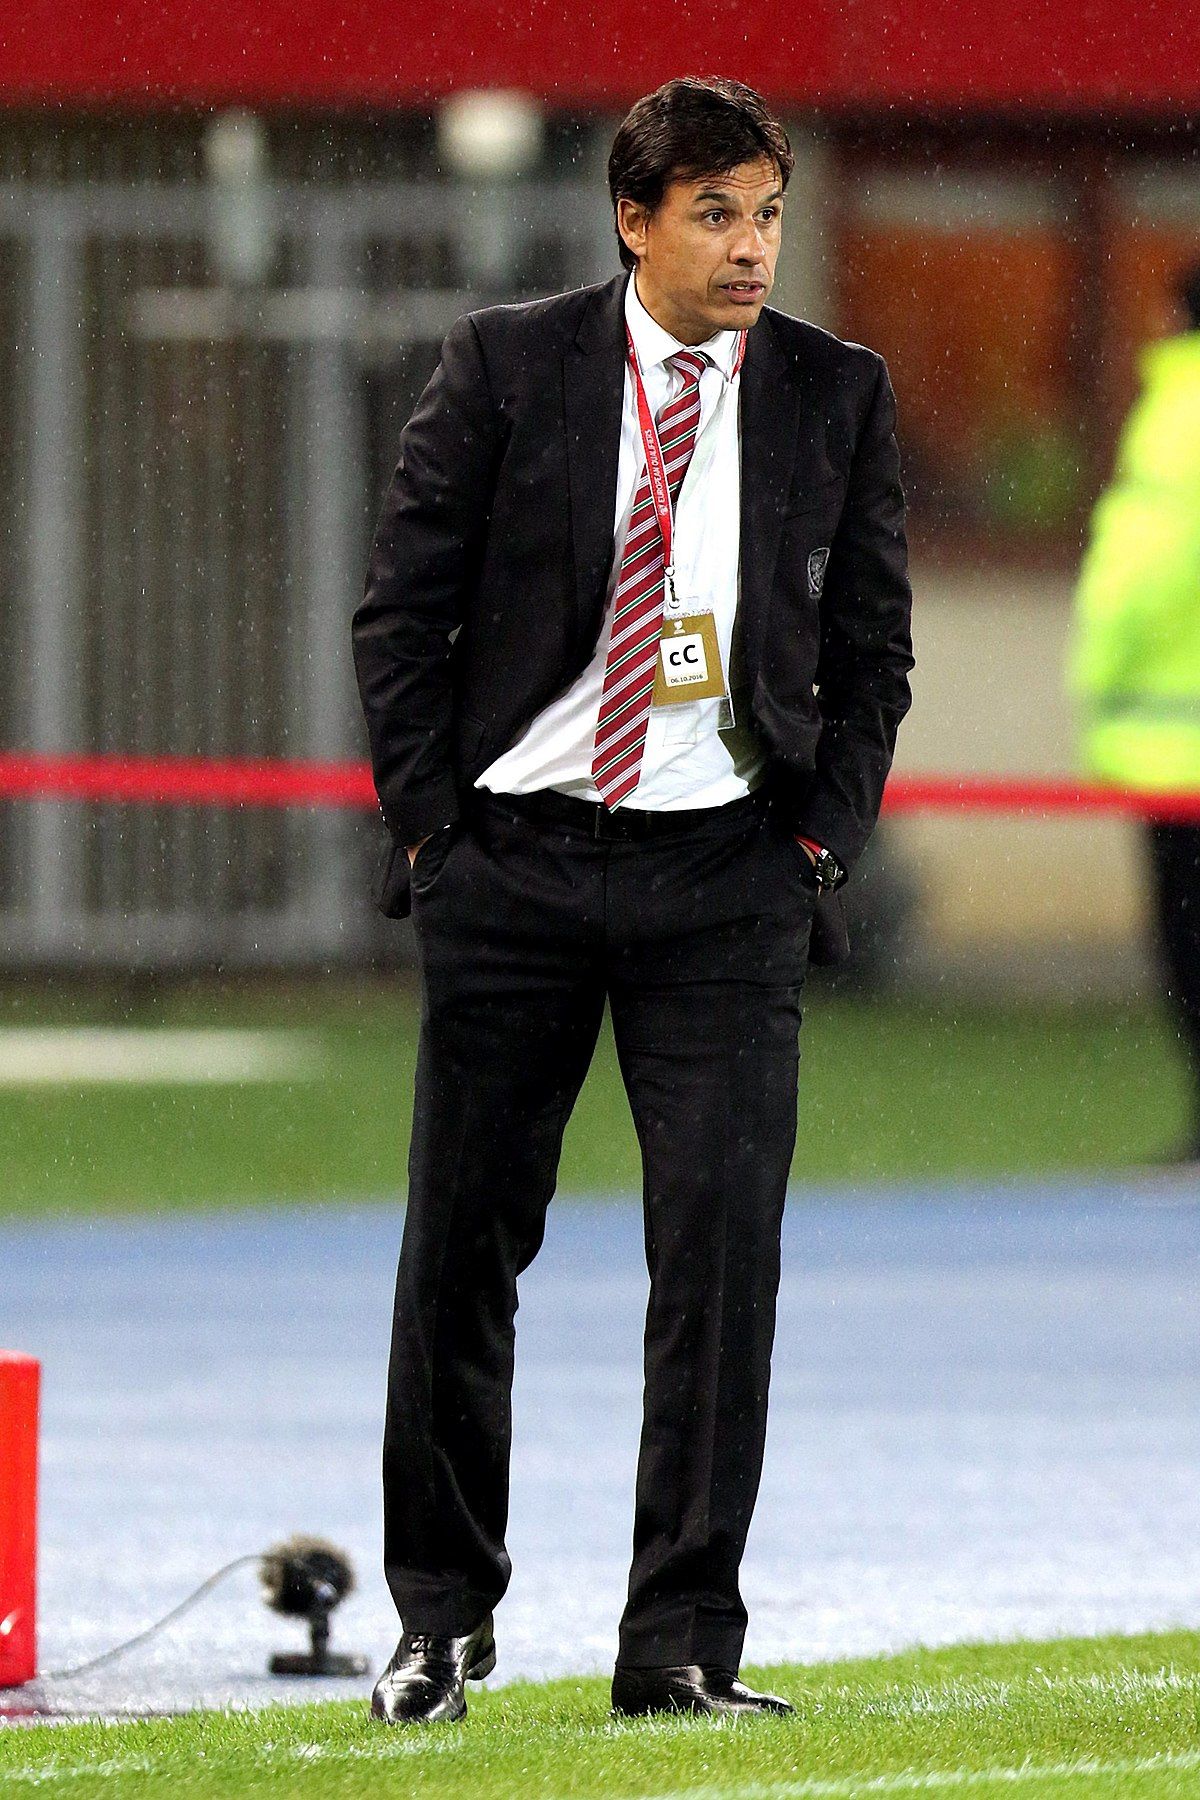 Wales national football team manager - Wikipedia